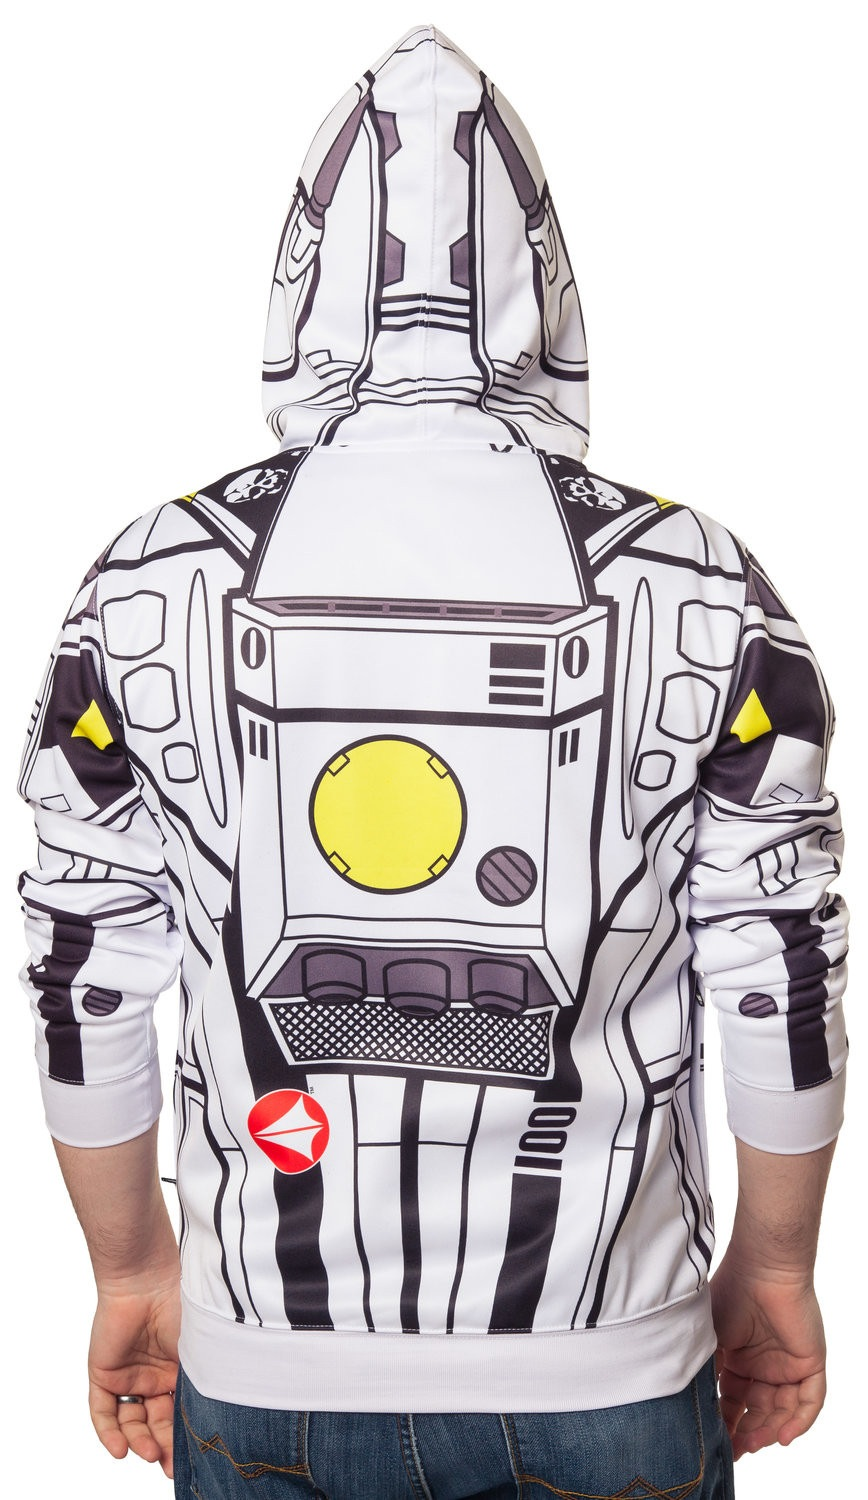 robotech-skull-one-sublimation-costume-hoodie.3.jpeg